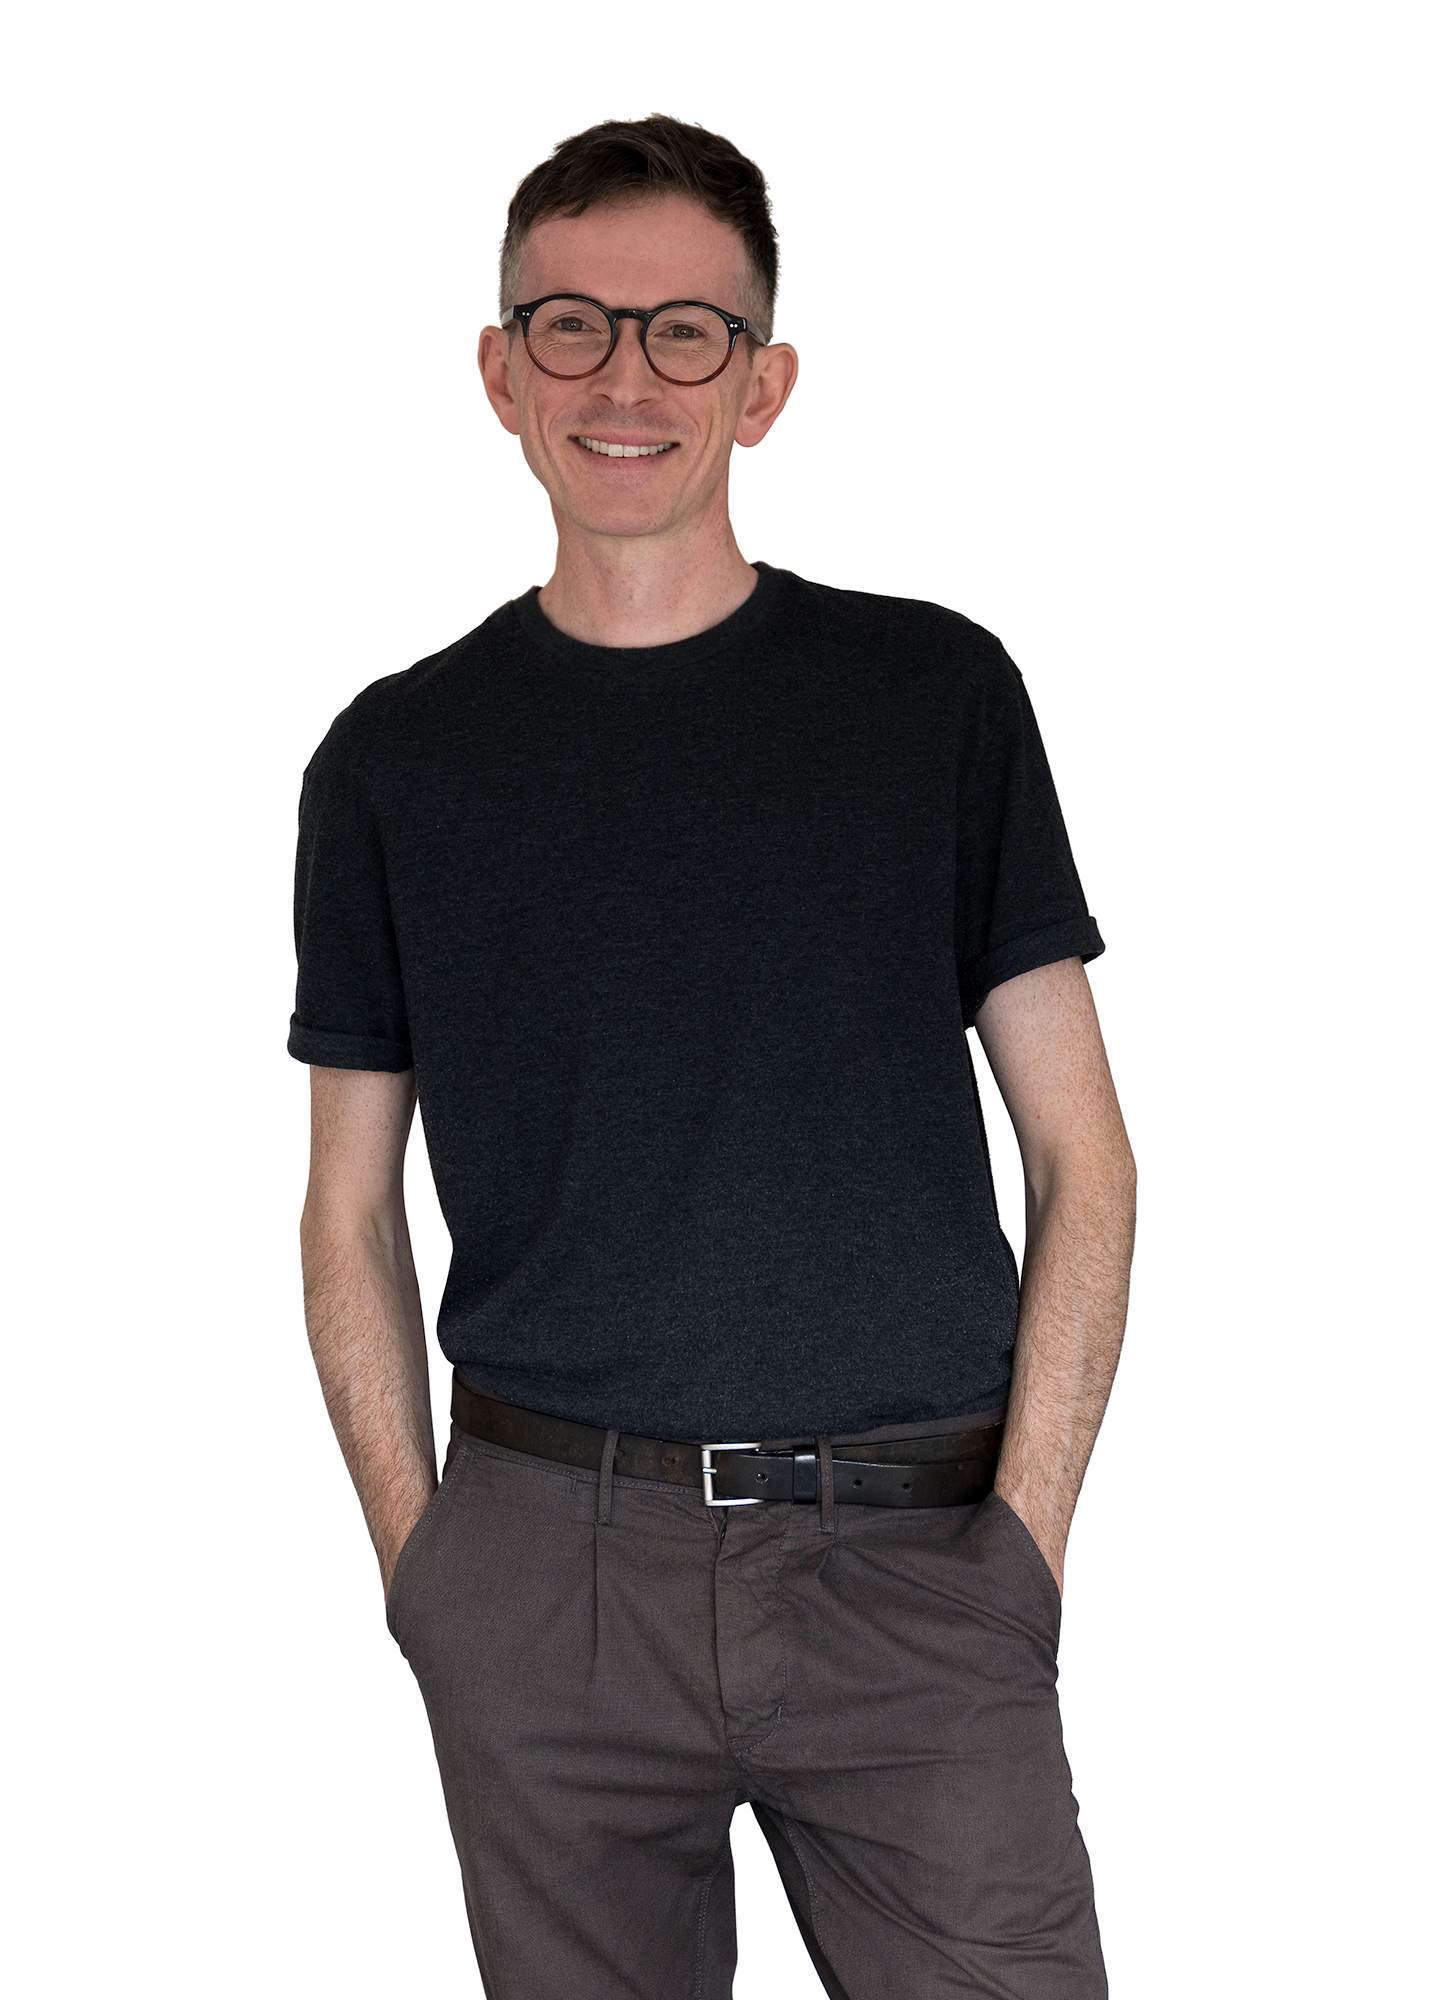 A man stood with his hands in pockets and smiling.